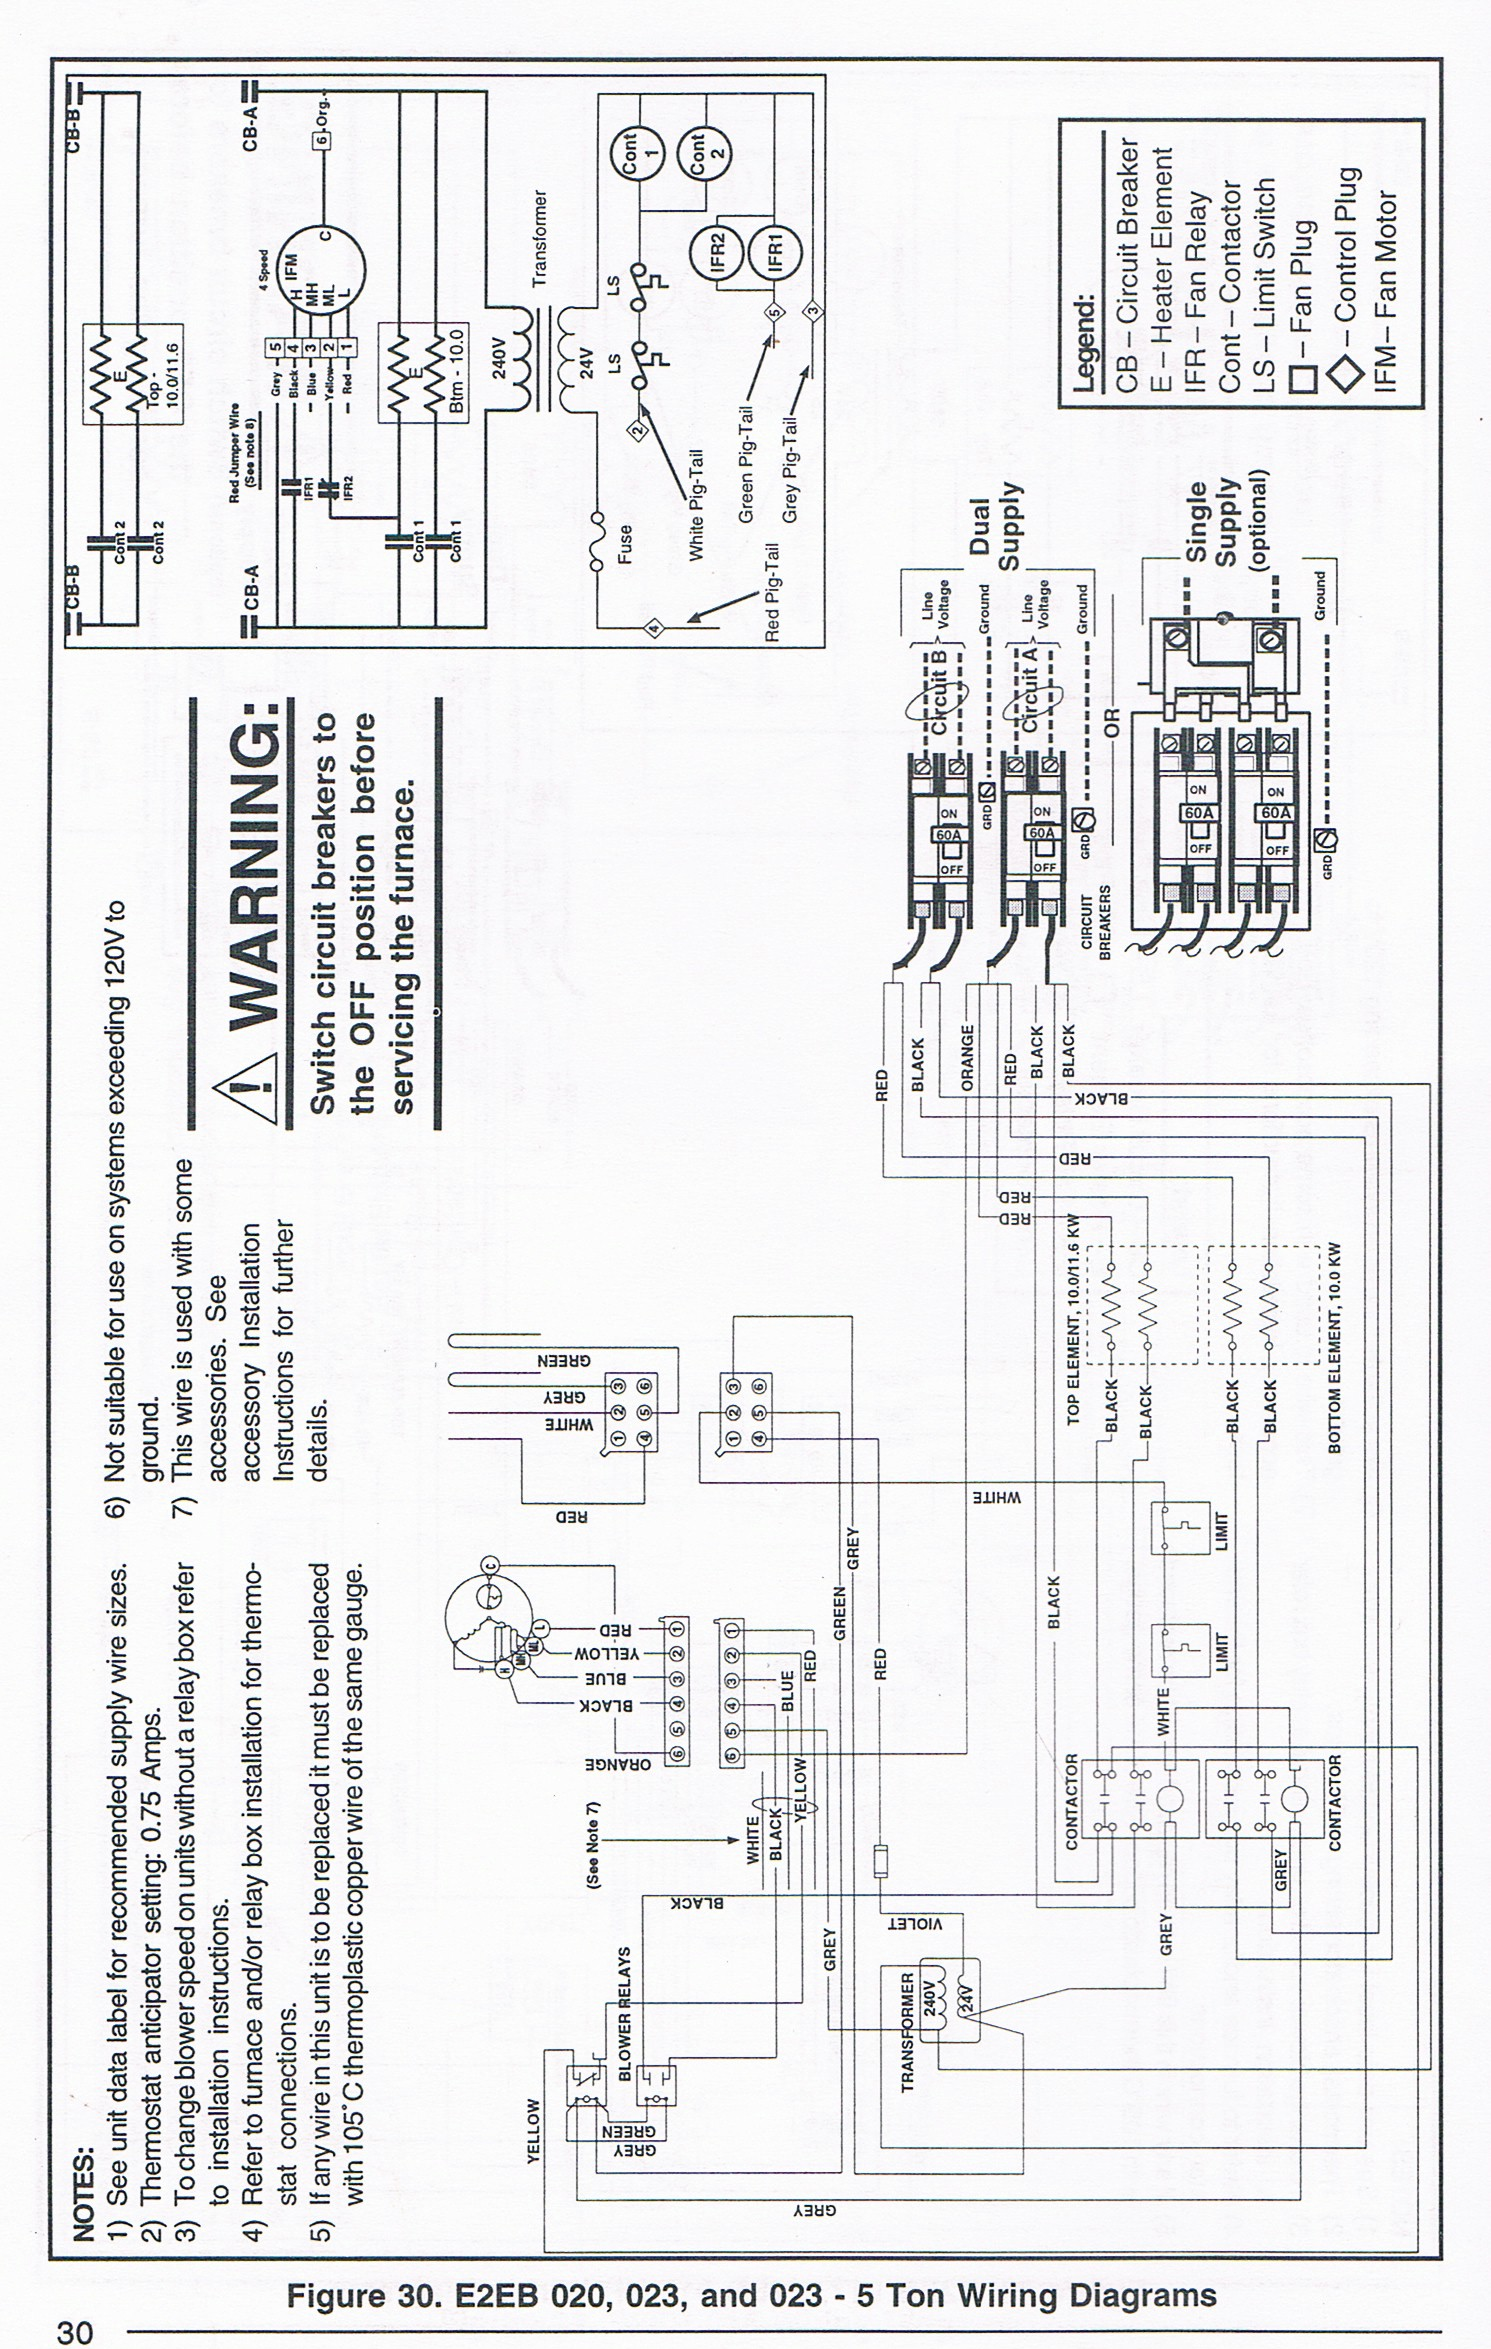 2011 05 04_234443_e2eb wiring diagram for intertherm furnace the wiring diagram e1eb 015ha wiring diagram at crackthecode.co